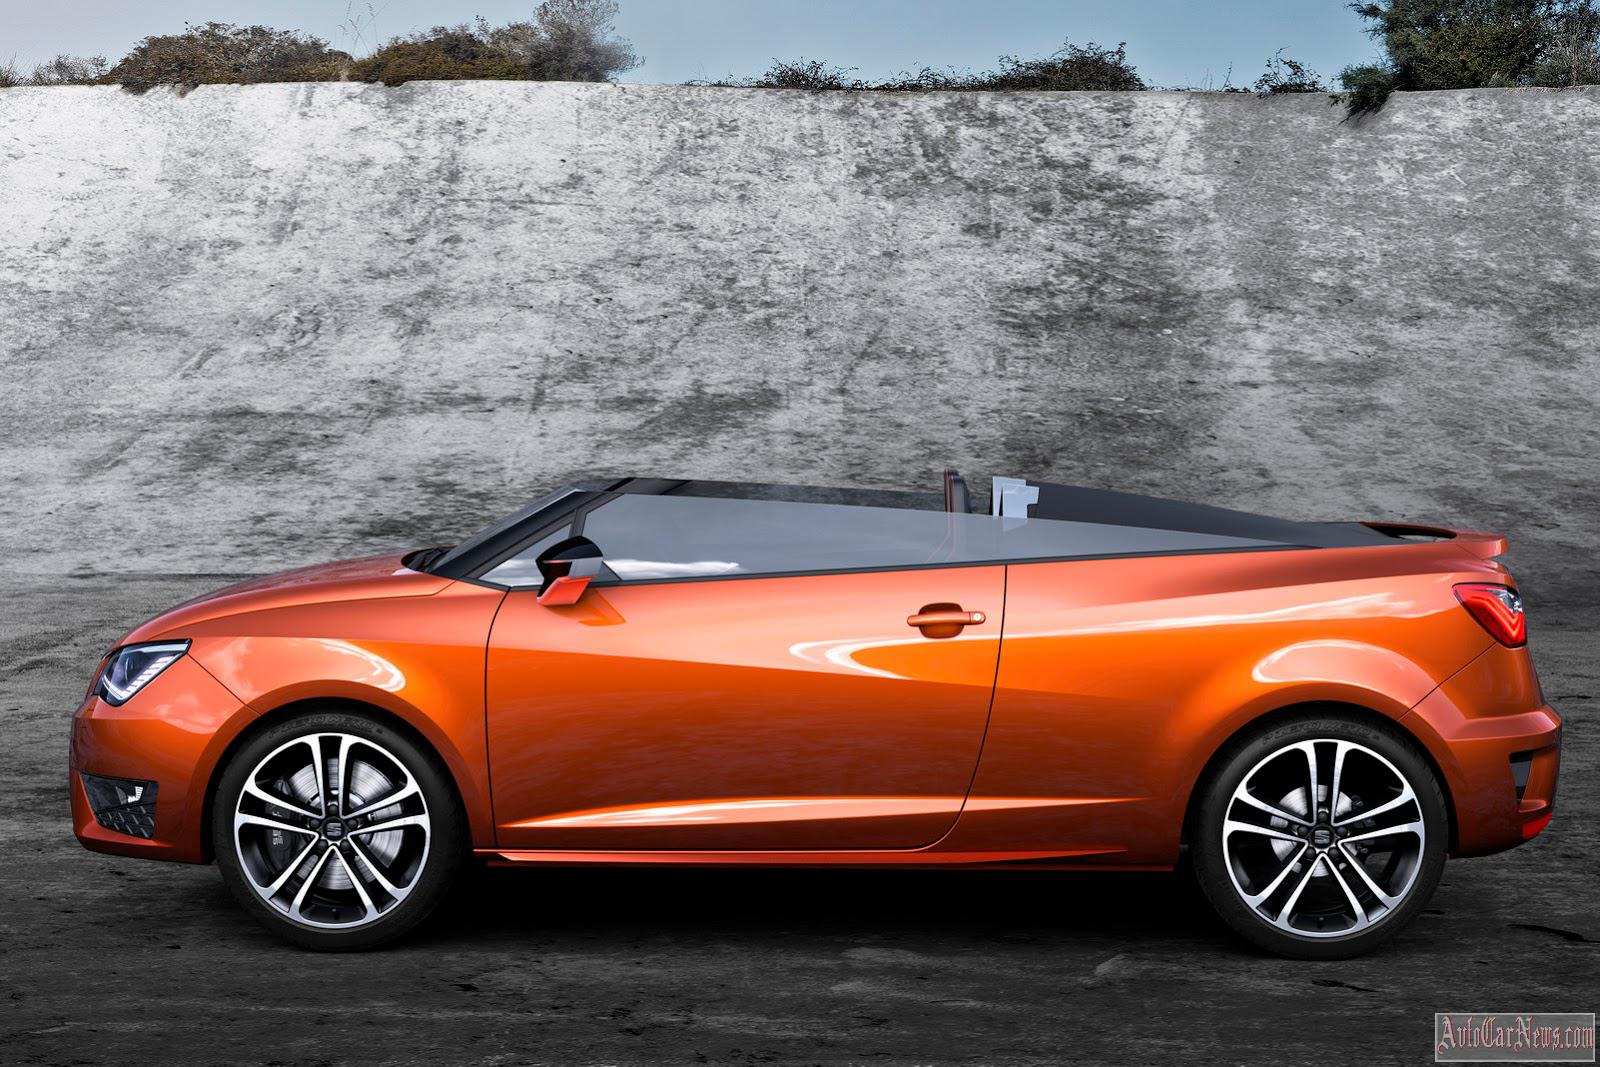 2014 Seat Ibiza Cupster Concept Photo